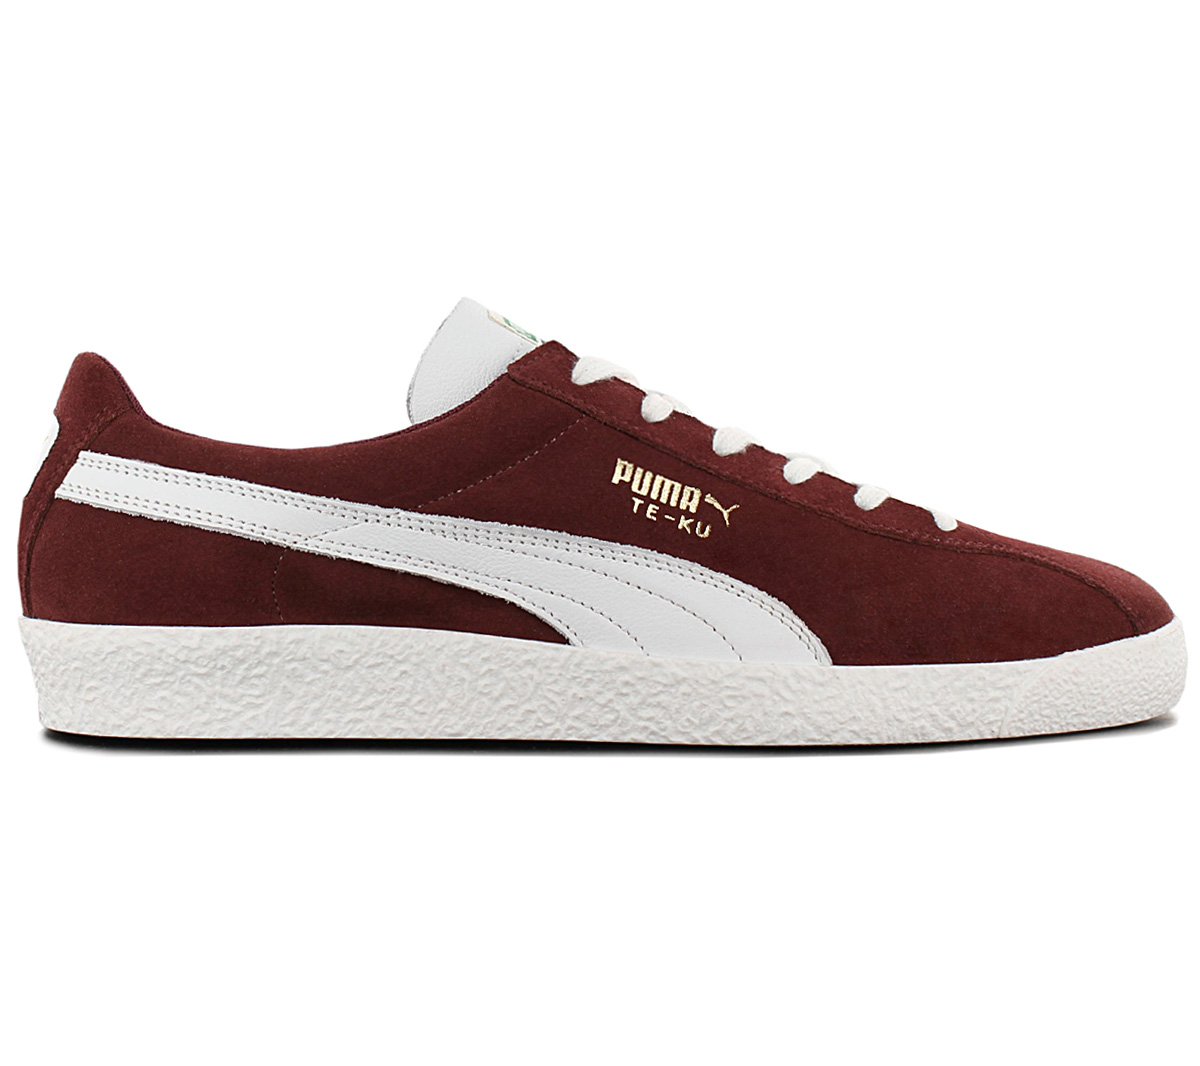 Details about Puma Te Ku Prime Men's Sneaker 366679 02 Leather Red Shoes Retro Trainers New